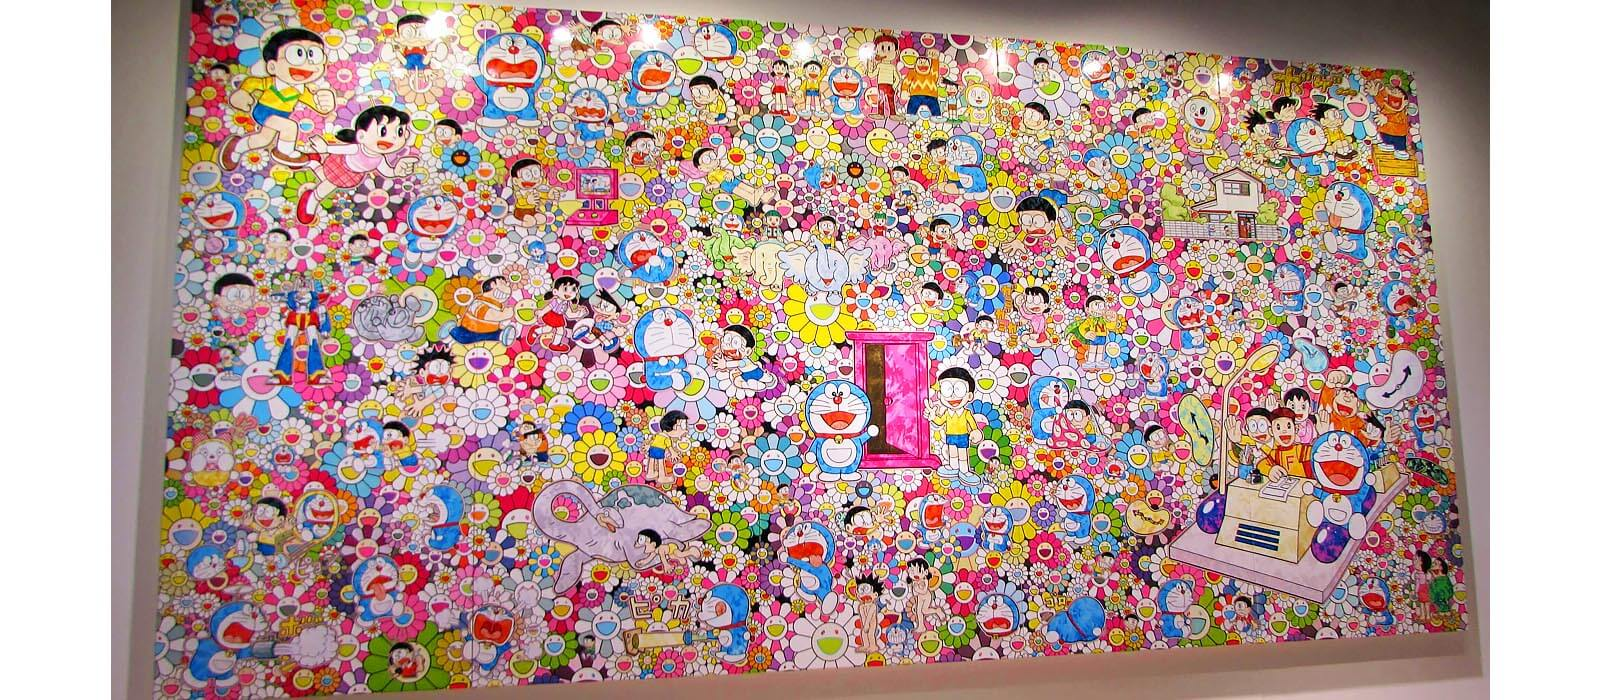 The Doraemon Exhibition-Wouldn't It Be Nice If We Could Do Such a Thing